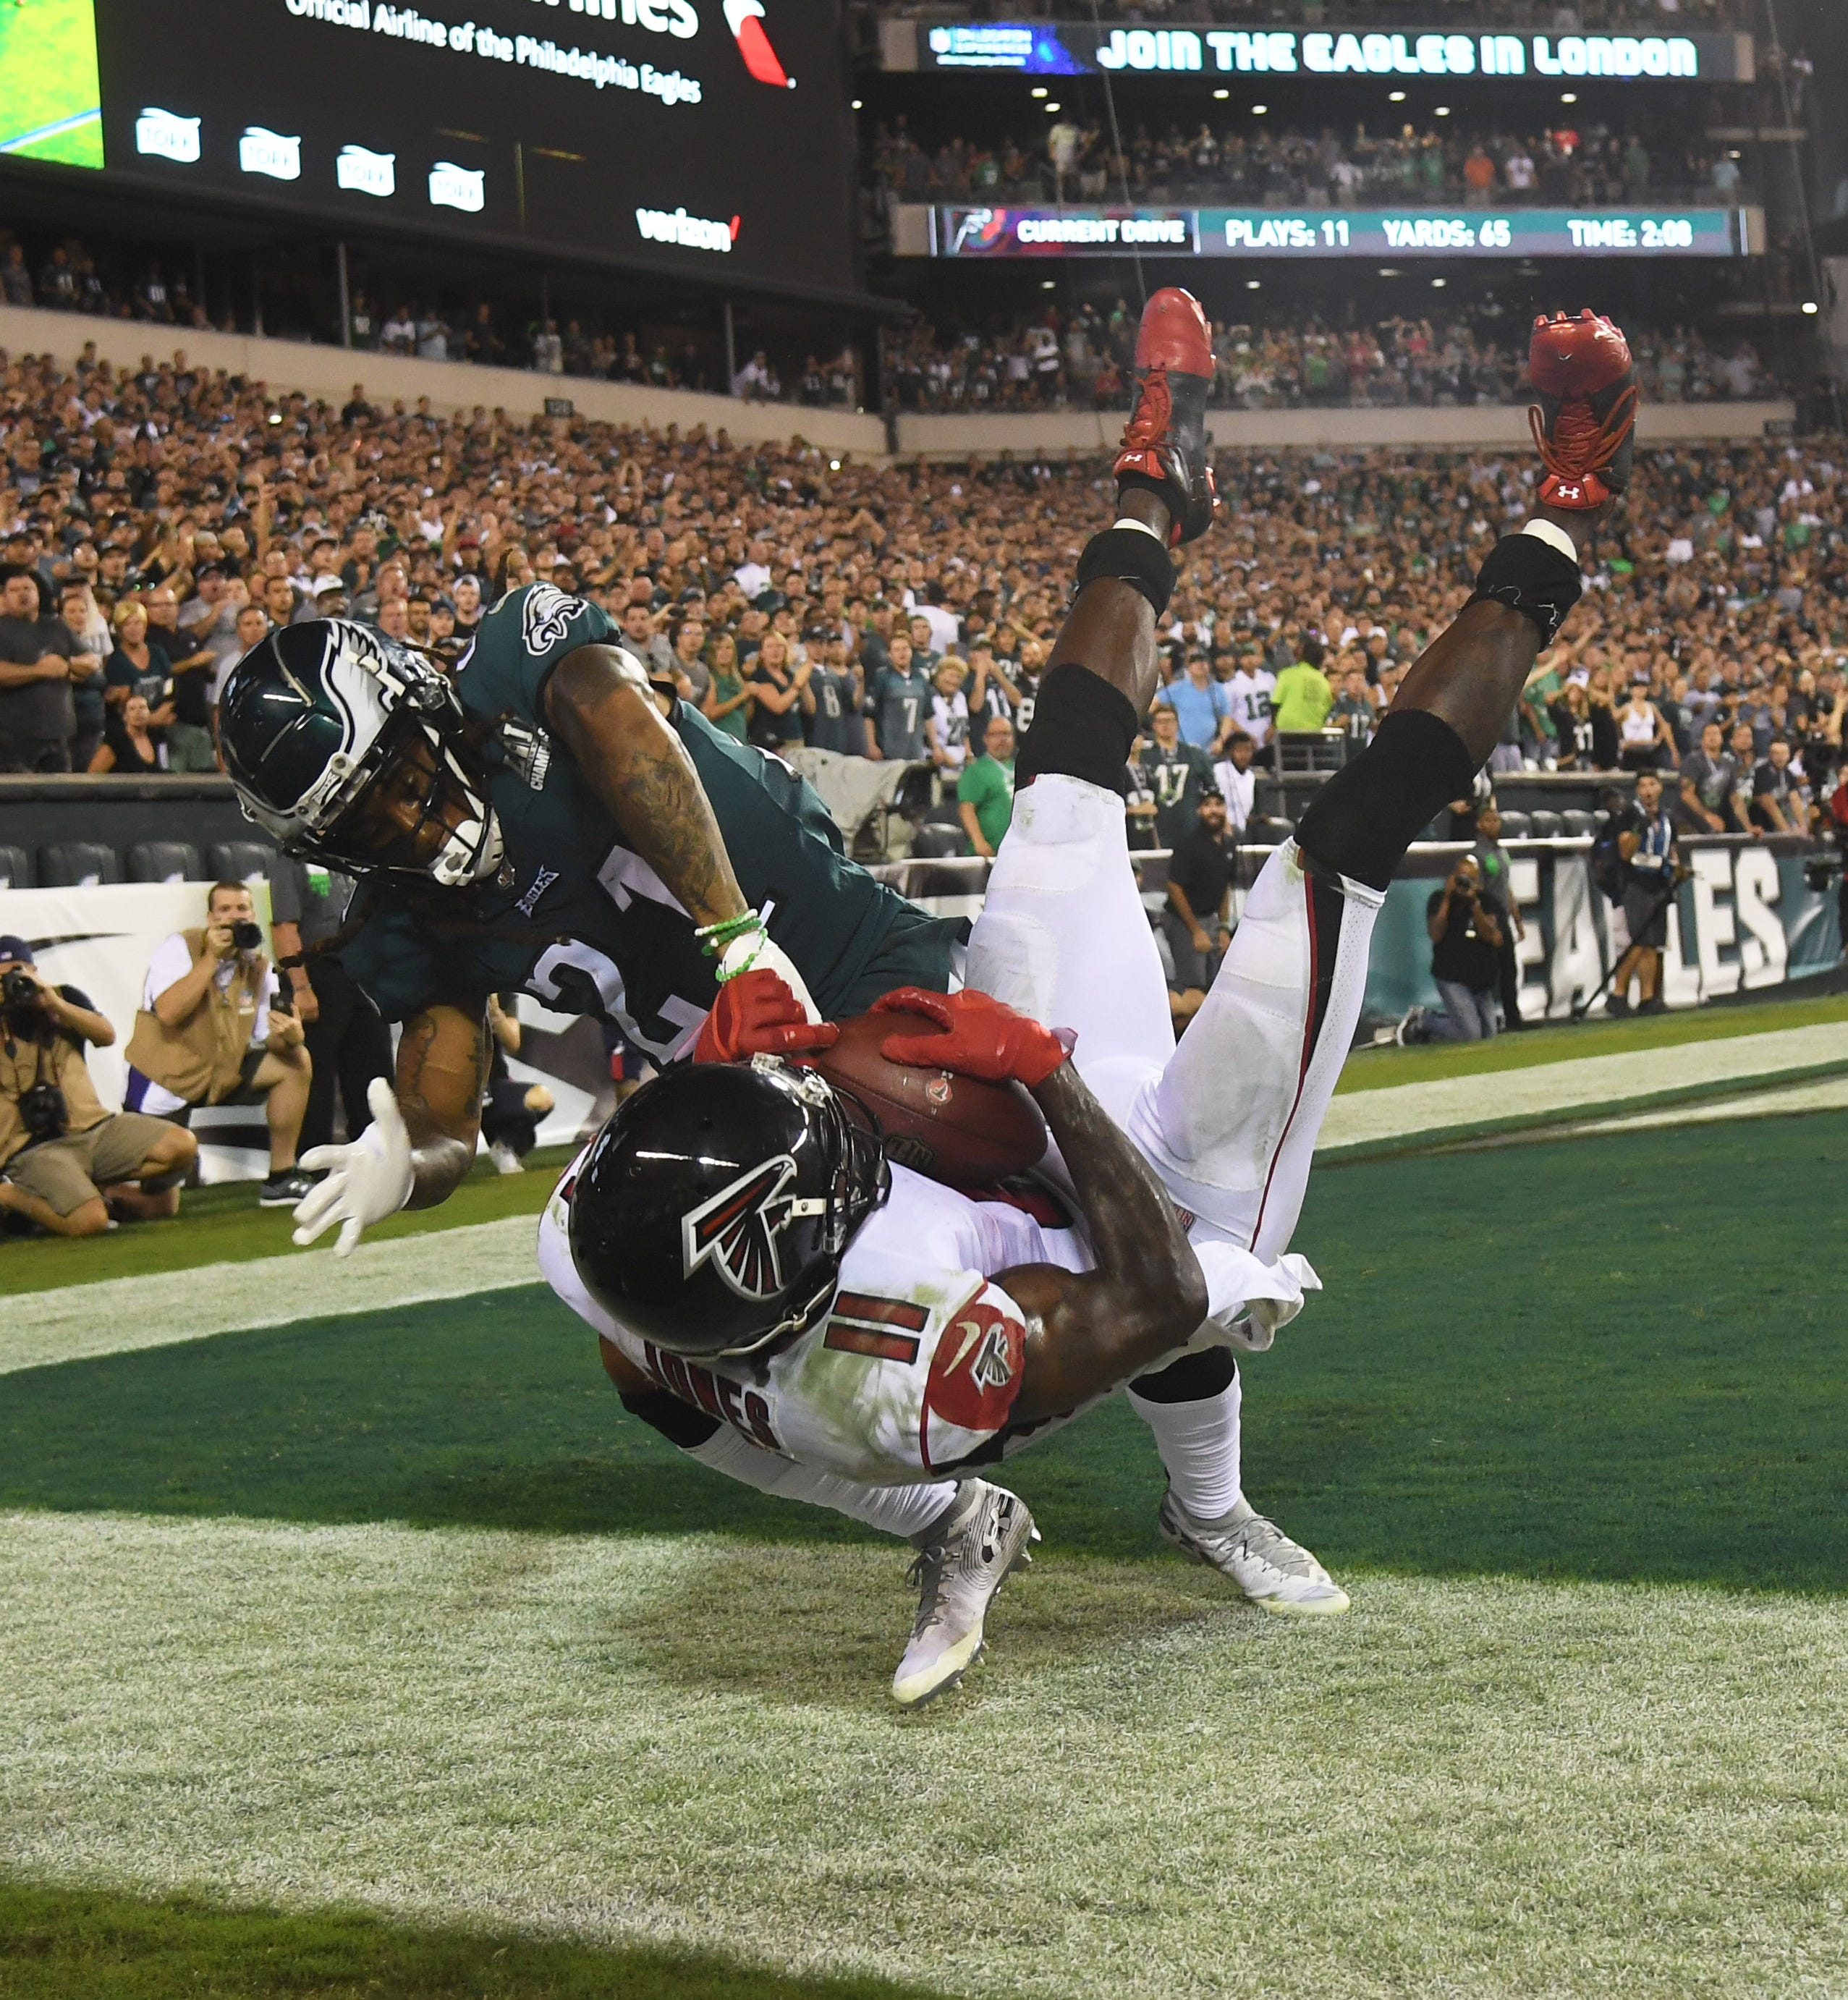 Philadelphia Eagles cornerback Ronald Darby pushes Atlanta Falcons wide receiver Julio Jones out of bounds on the final play of the Eagles - Packers QB Carted Off In Clash With Bears' 18-12 win at Lincoln Financial Field.